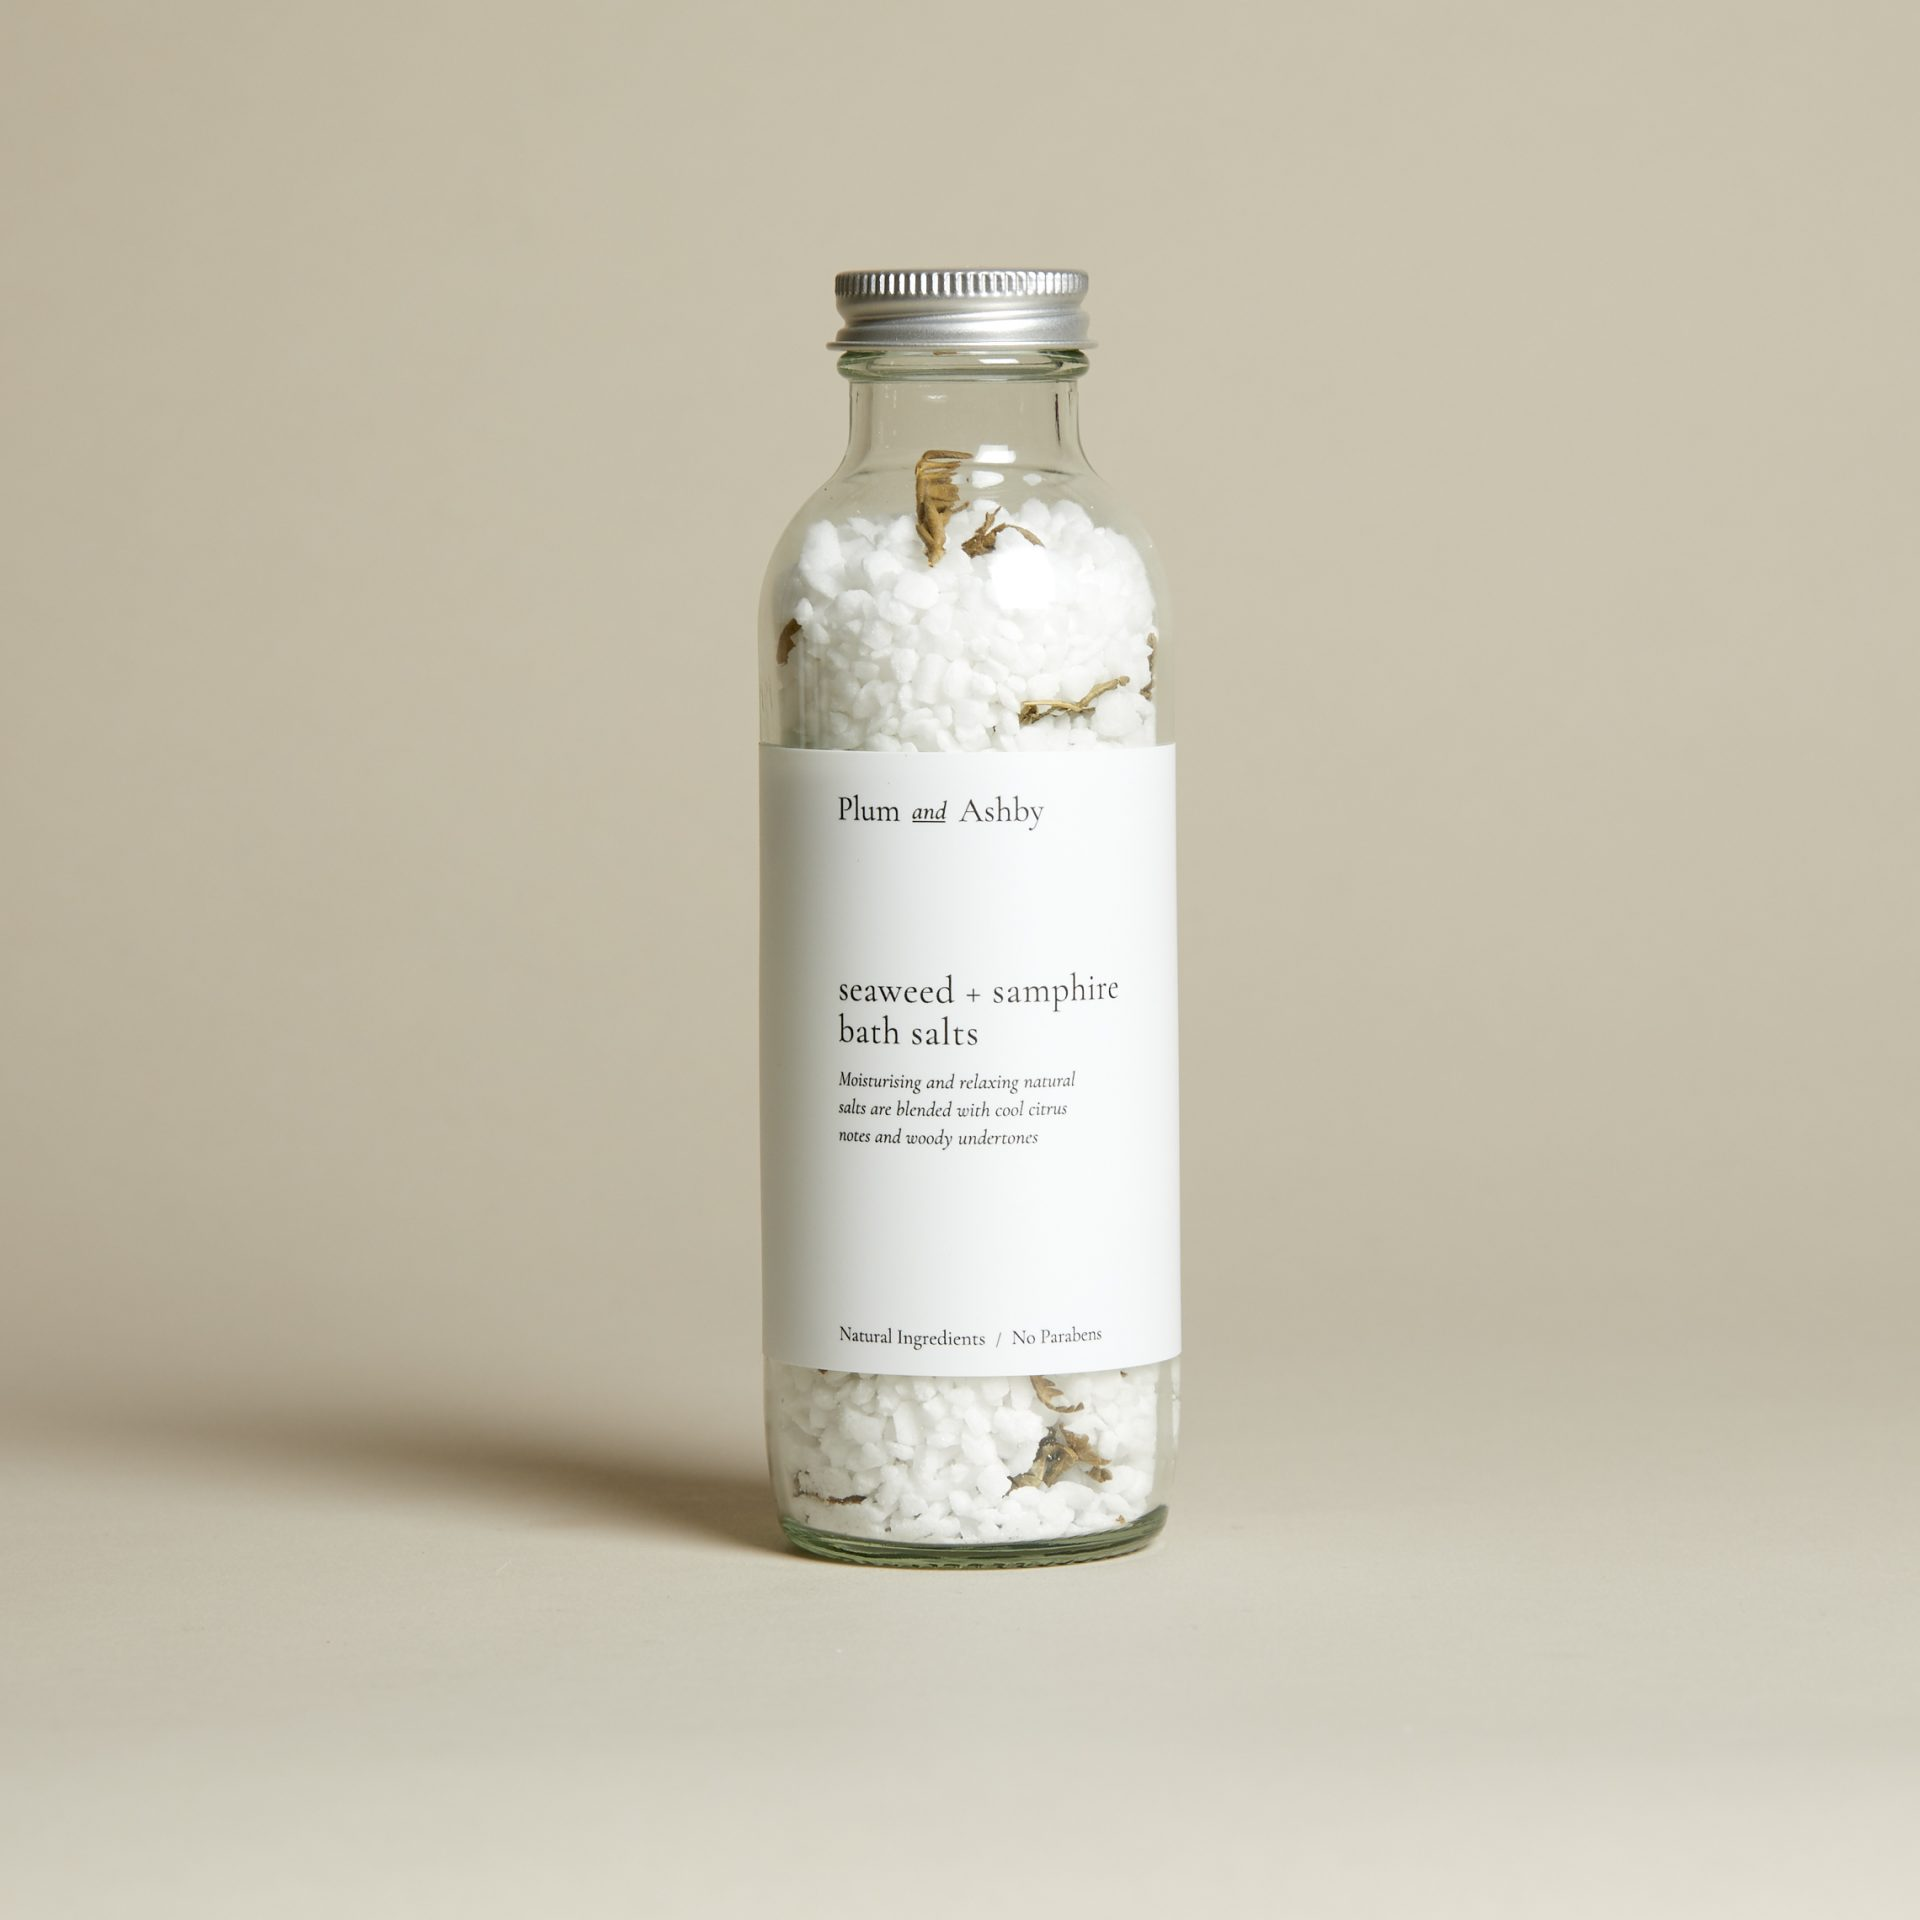 Plum and Ashby Seaweed & Samphire Bath Salts